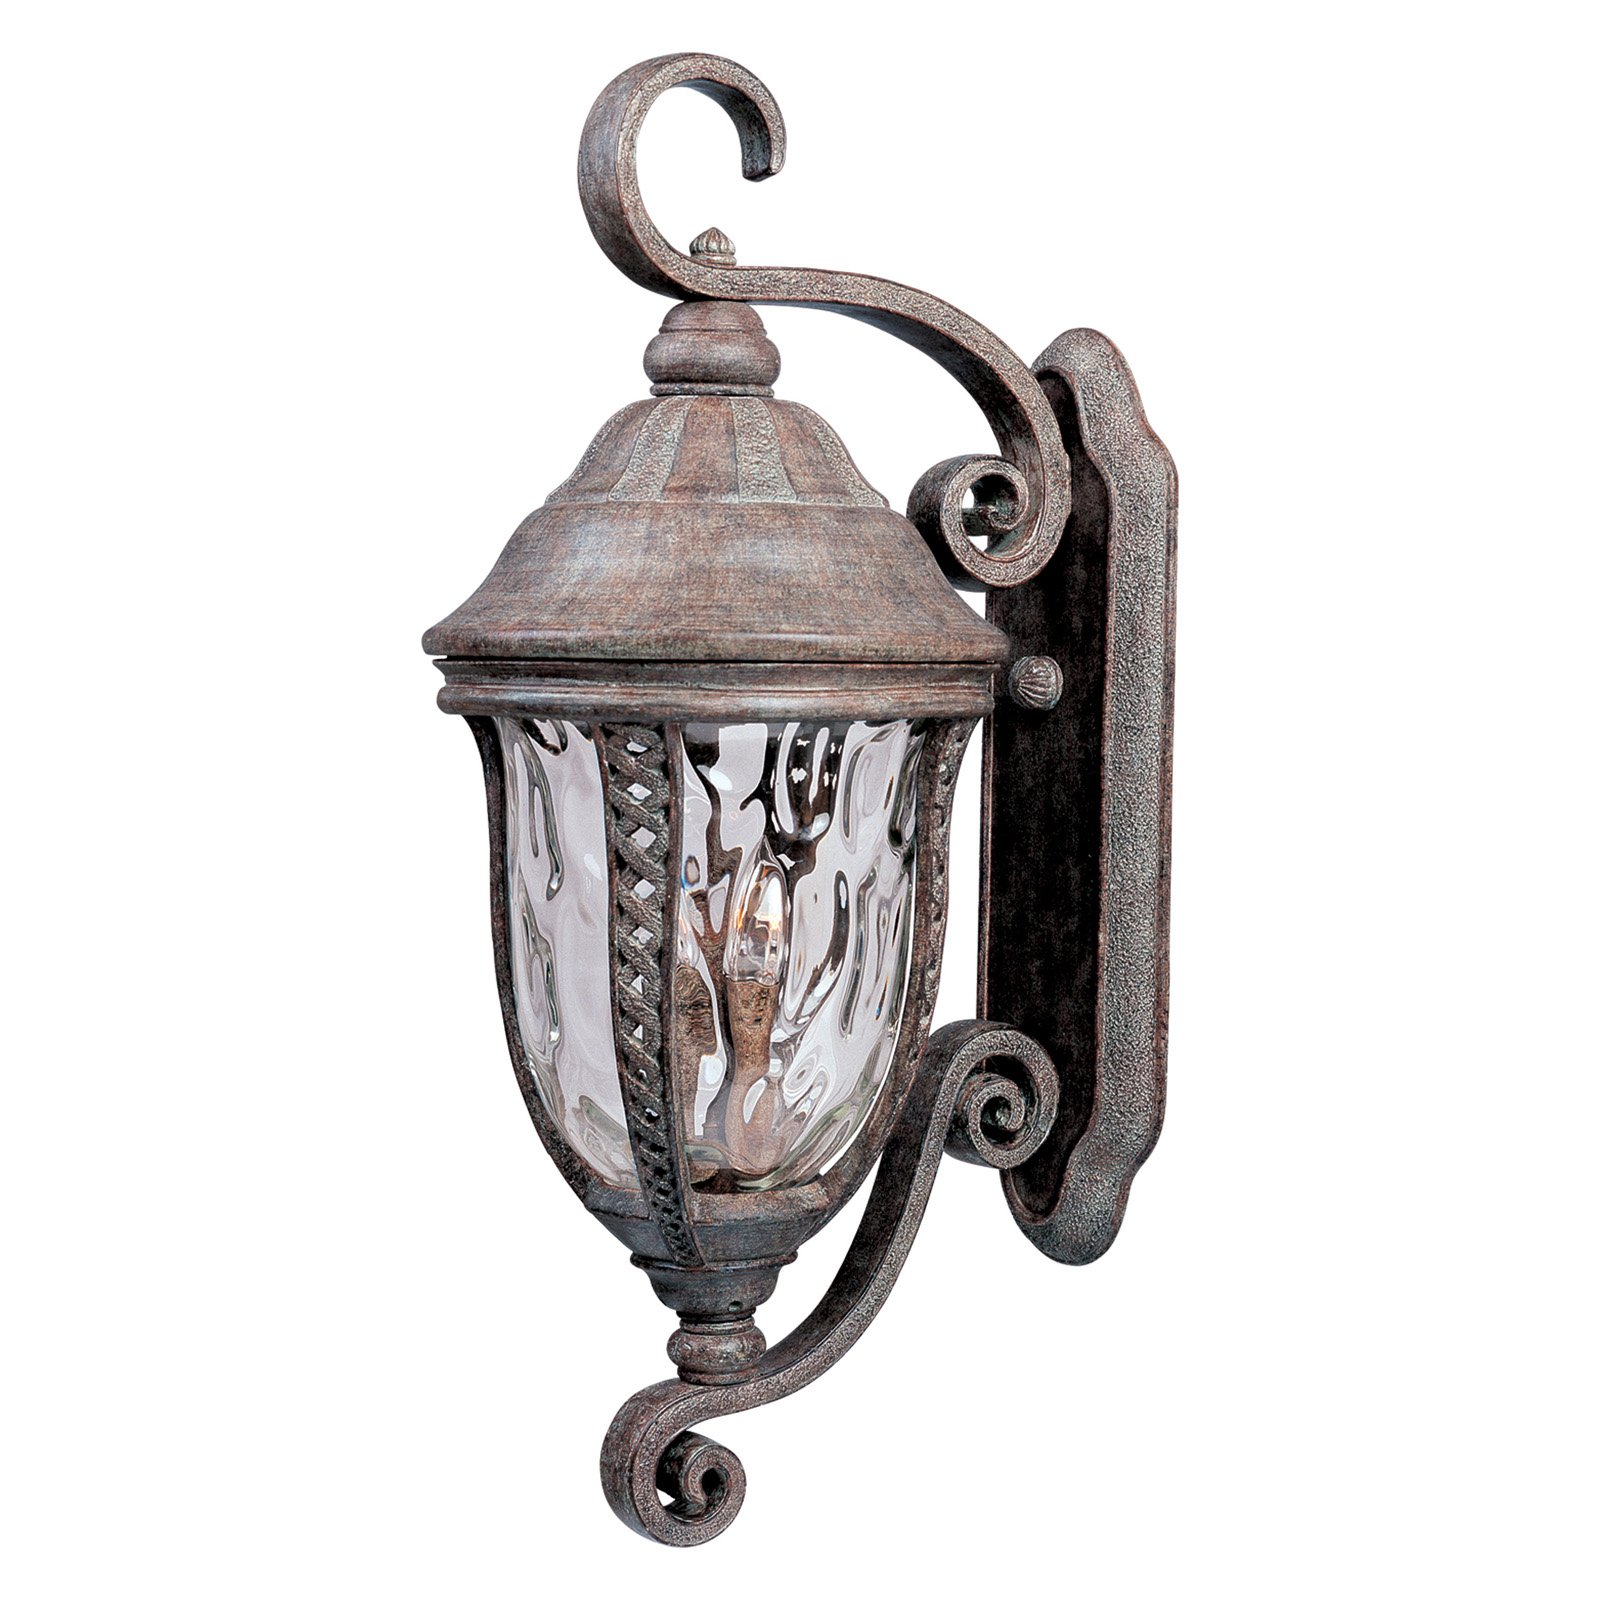 Maxim Whittier DC Outdoor Hanging Wall Lantern - 30.5H in. Earth Tone